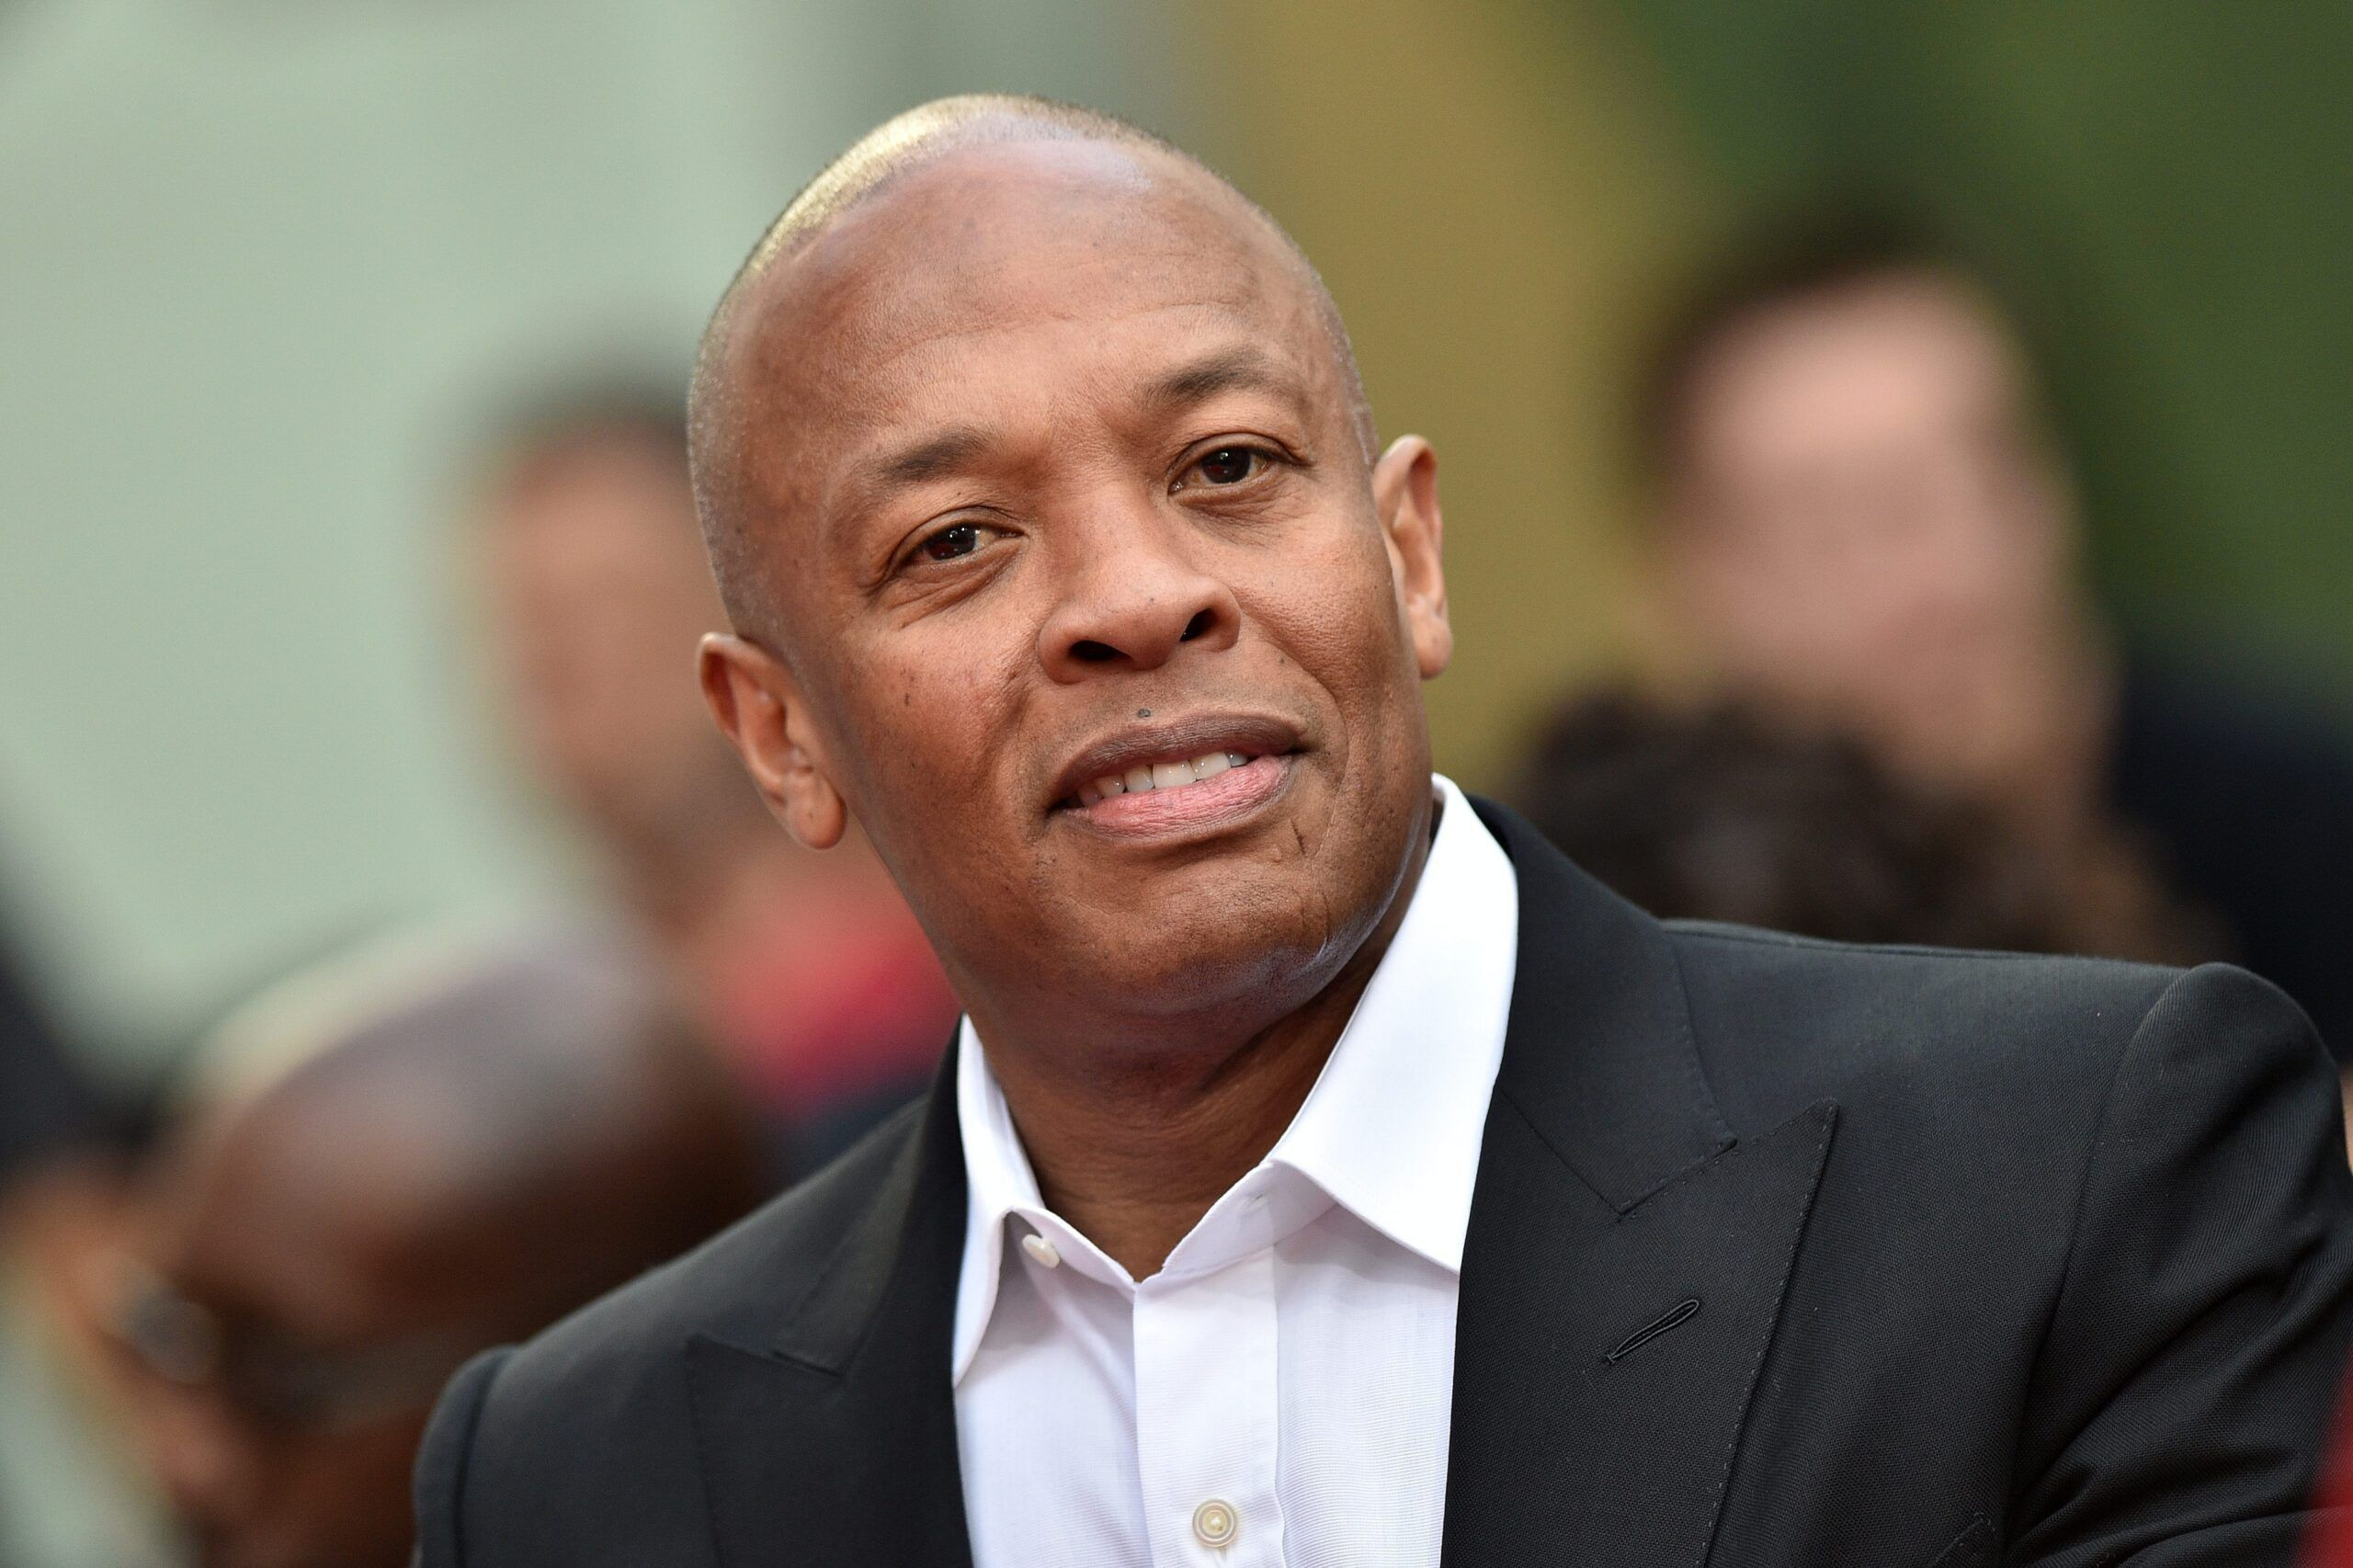 Dr. Dre Says He's 'Doing Great' After Being Hospitalized - Fame10